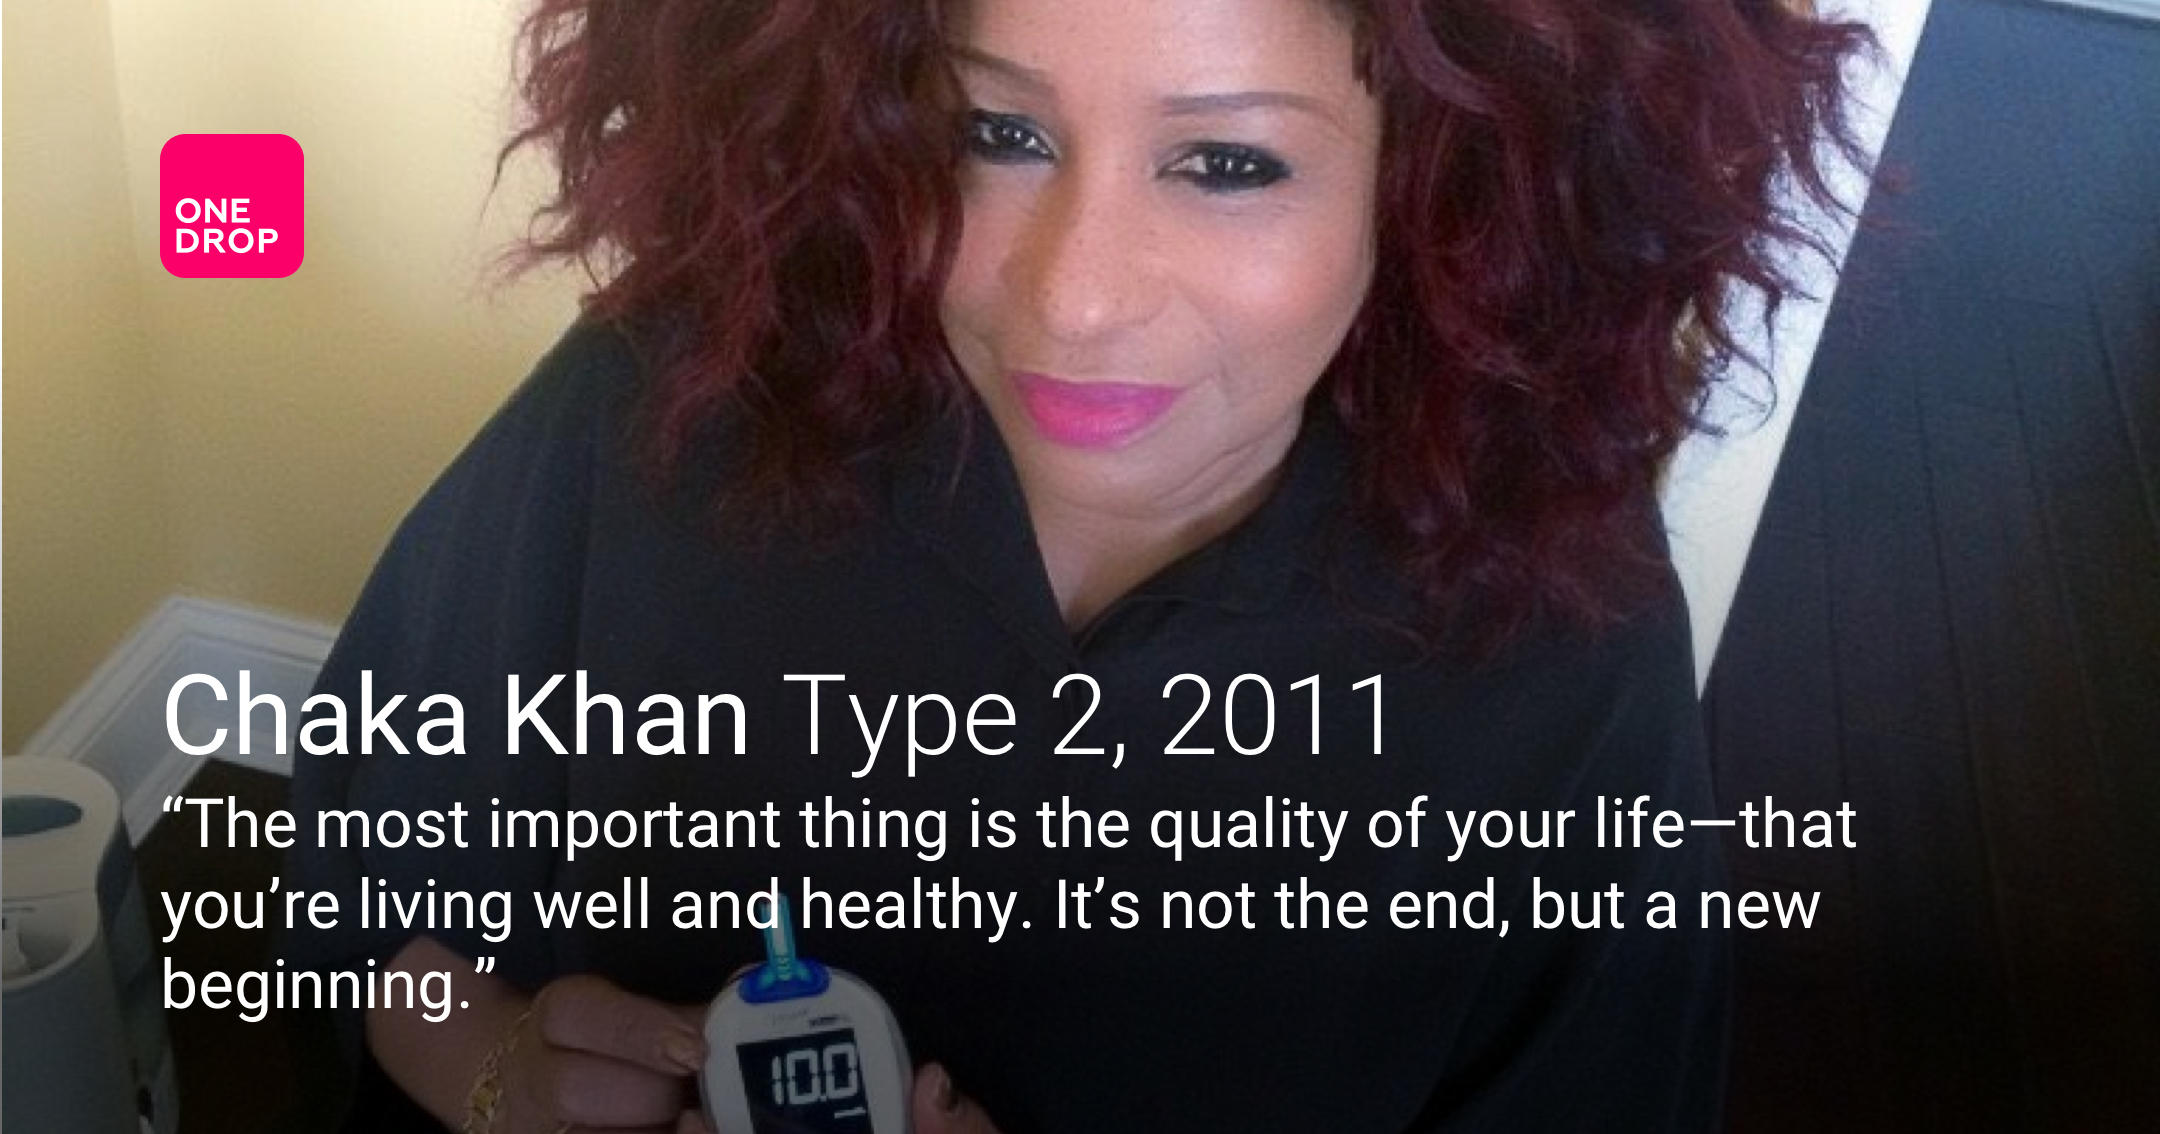 Chaka Khan - Chaka Khan diabetes - Chaka Khan type 2 diabetes - women with diabetes - women with type 2 diabetes - celebrities with diabetes - international women's day